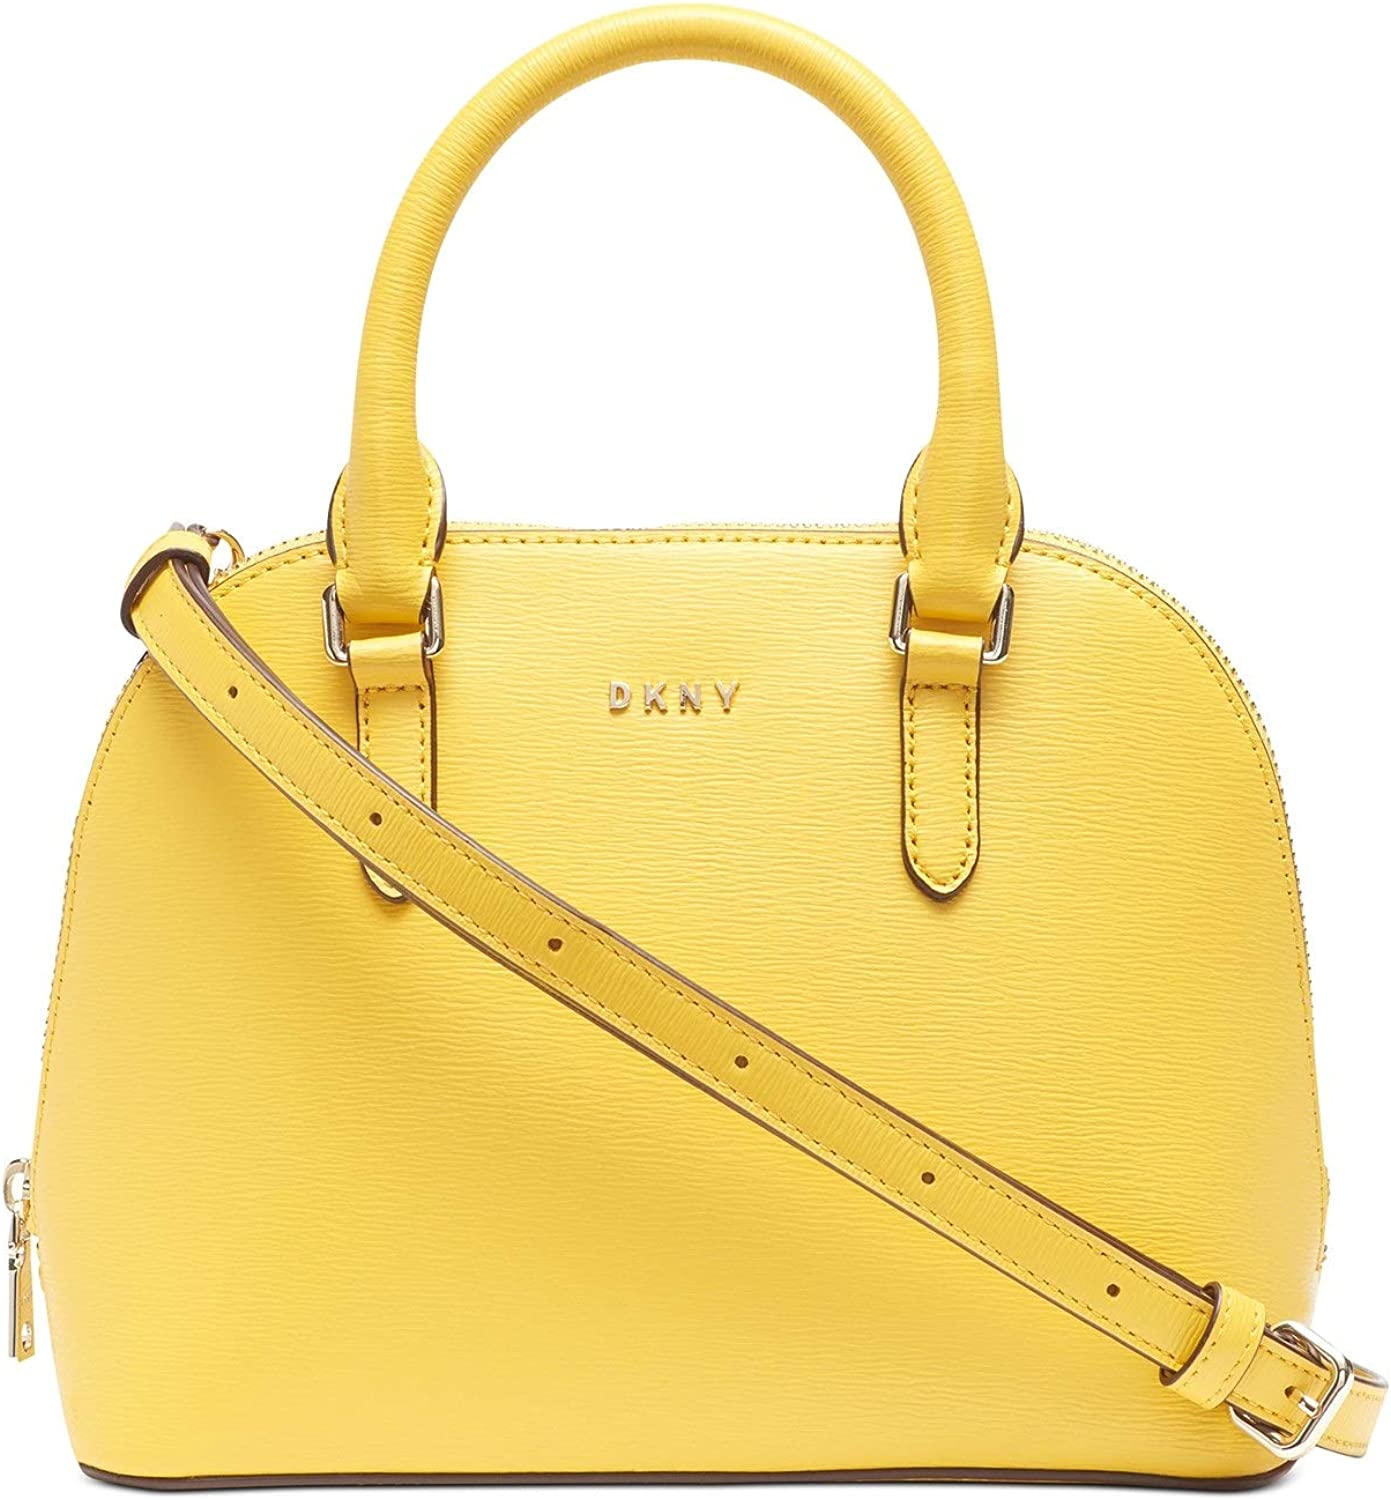 DKNY Bryant High quality new Small Dome Brand new Leather - Sun Crossbody Satchel Yellow